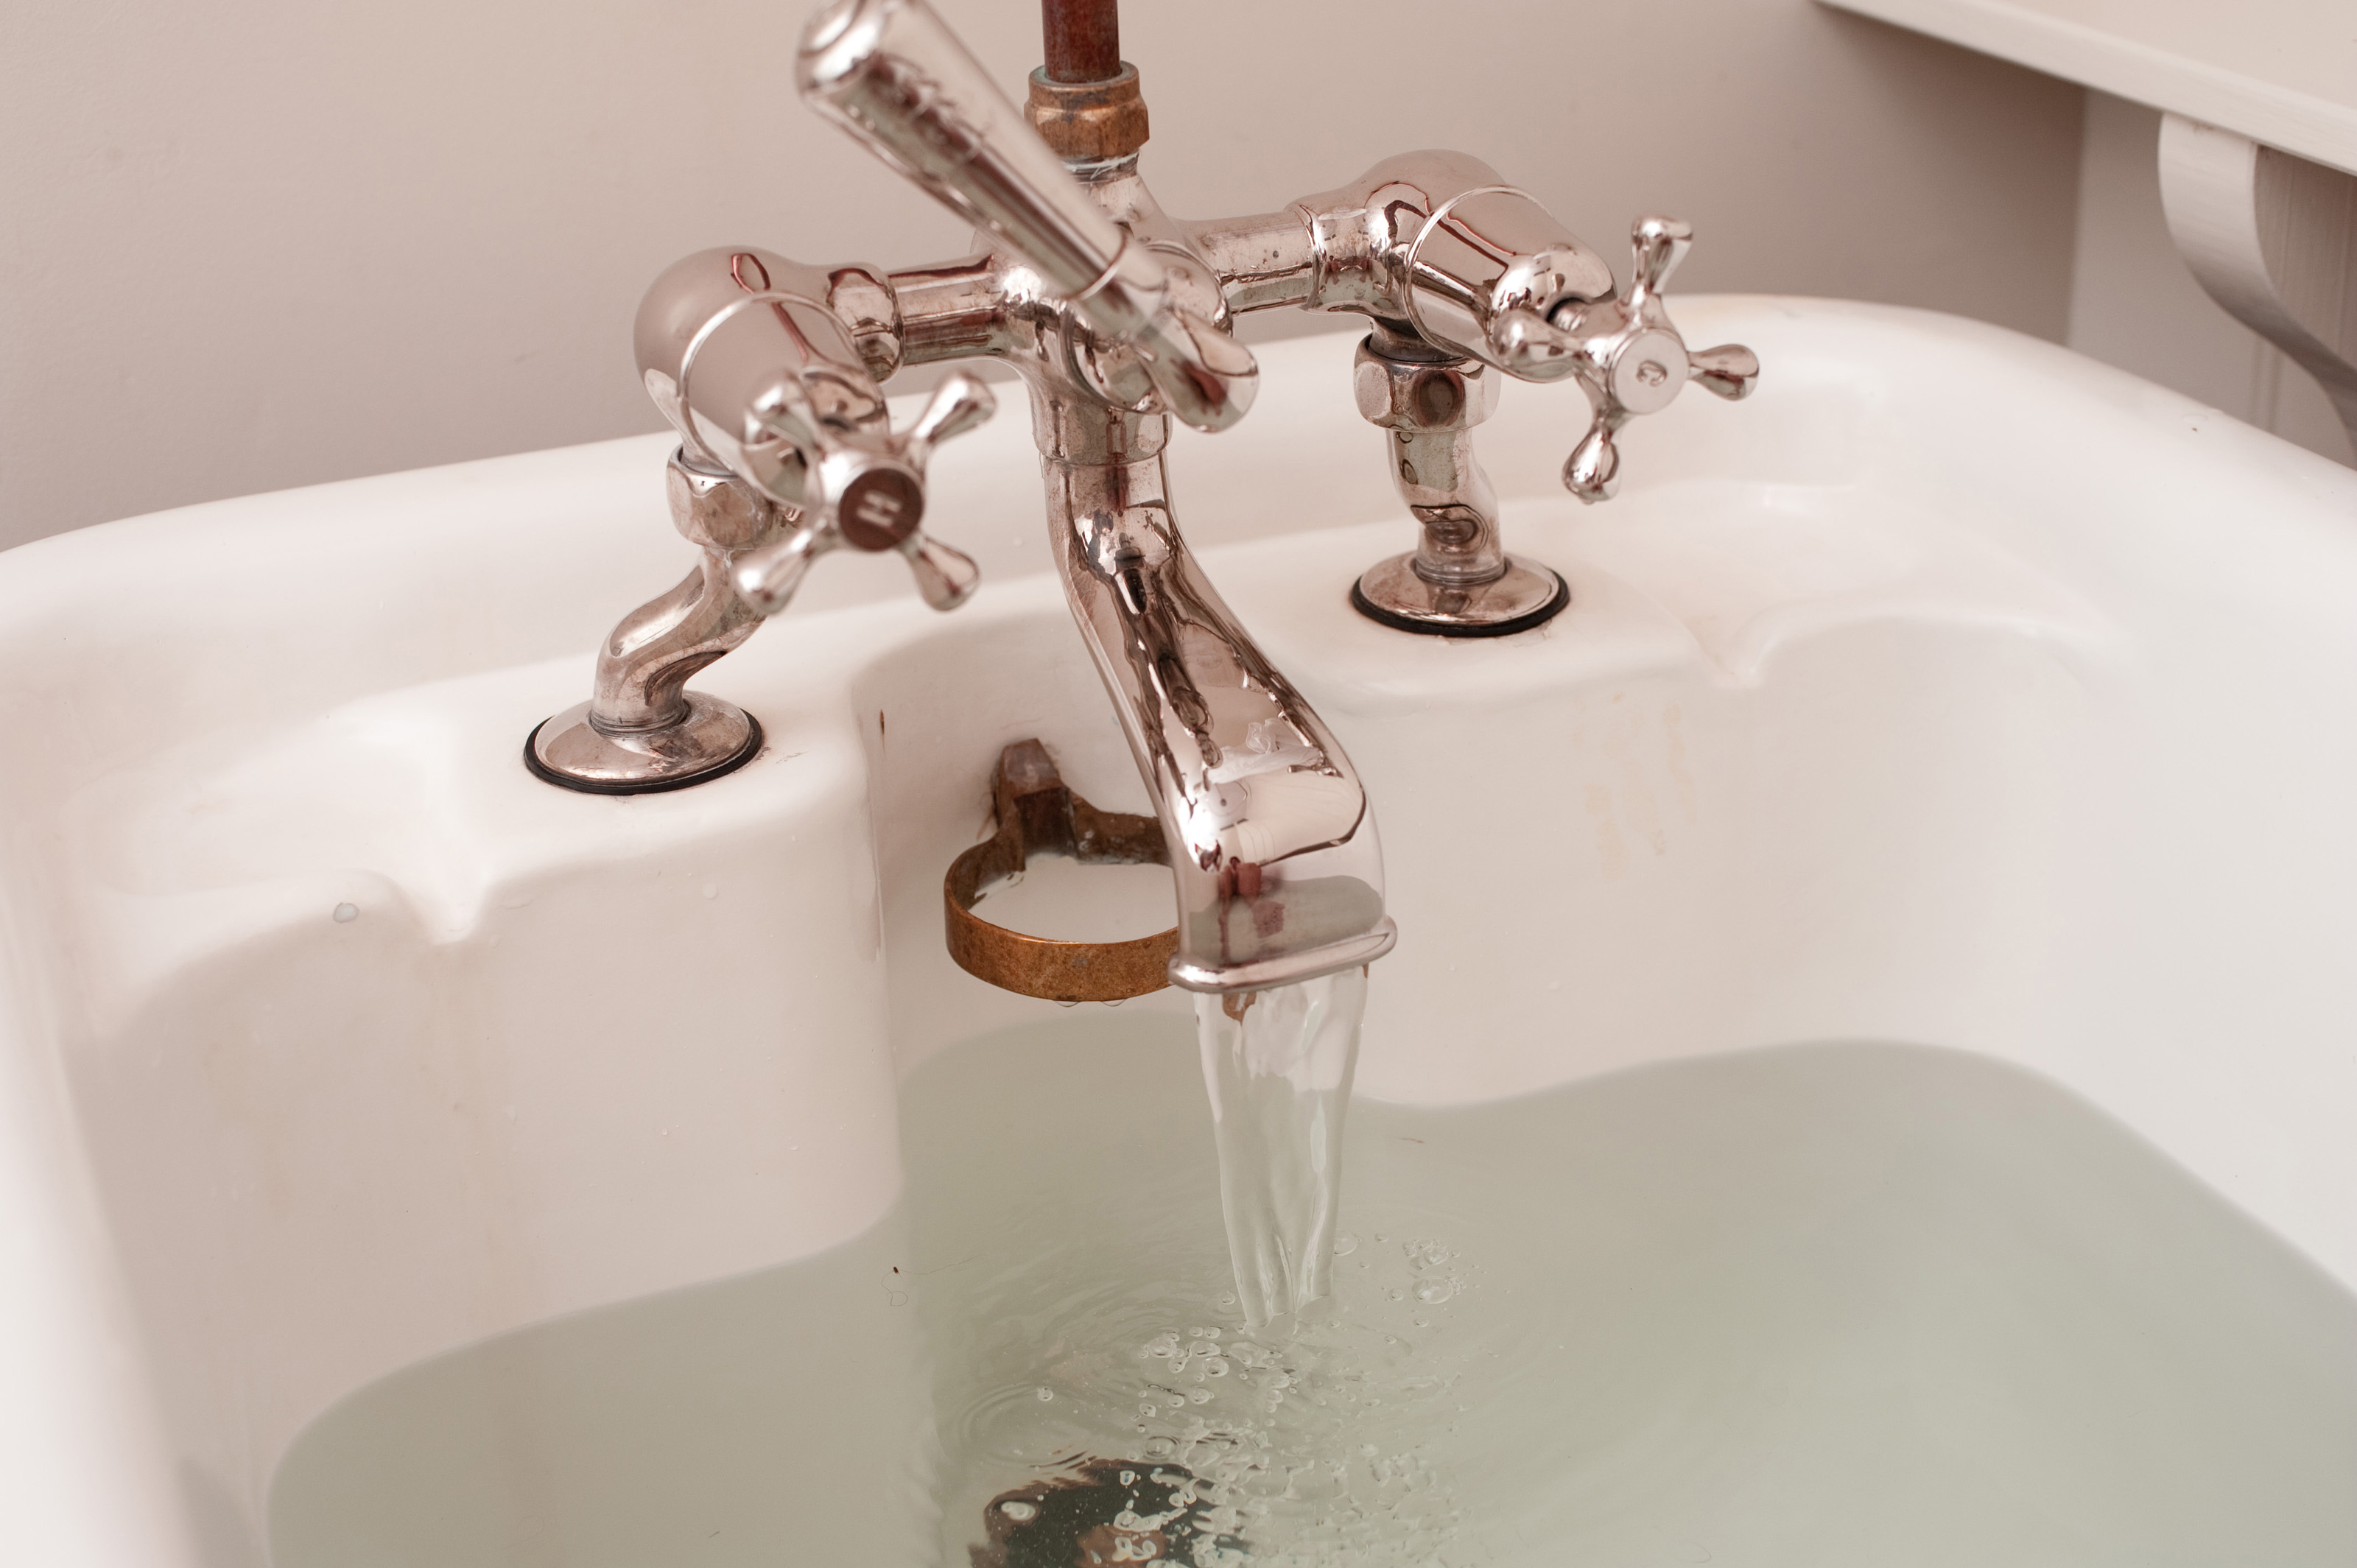 Free Stock Photo 6922 Running a bath  freeimageslive